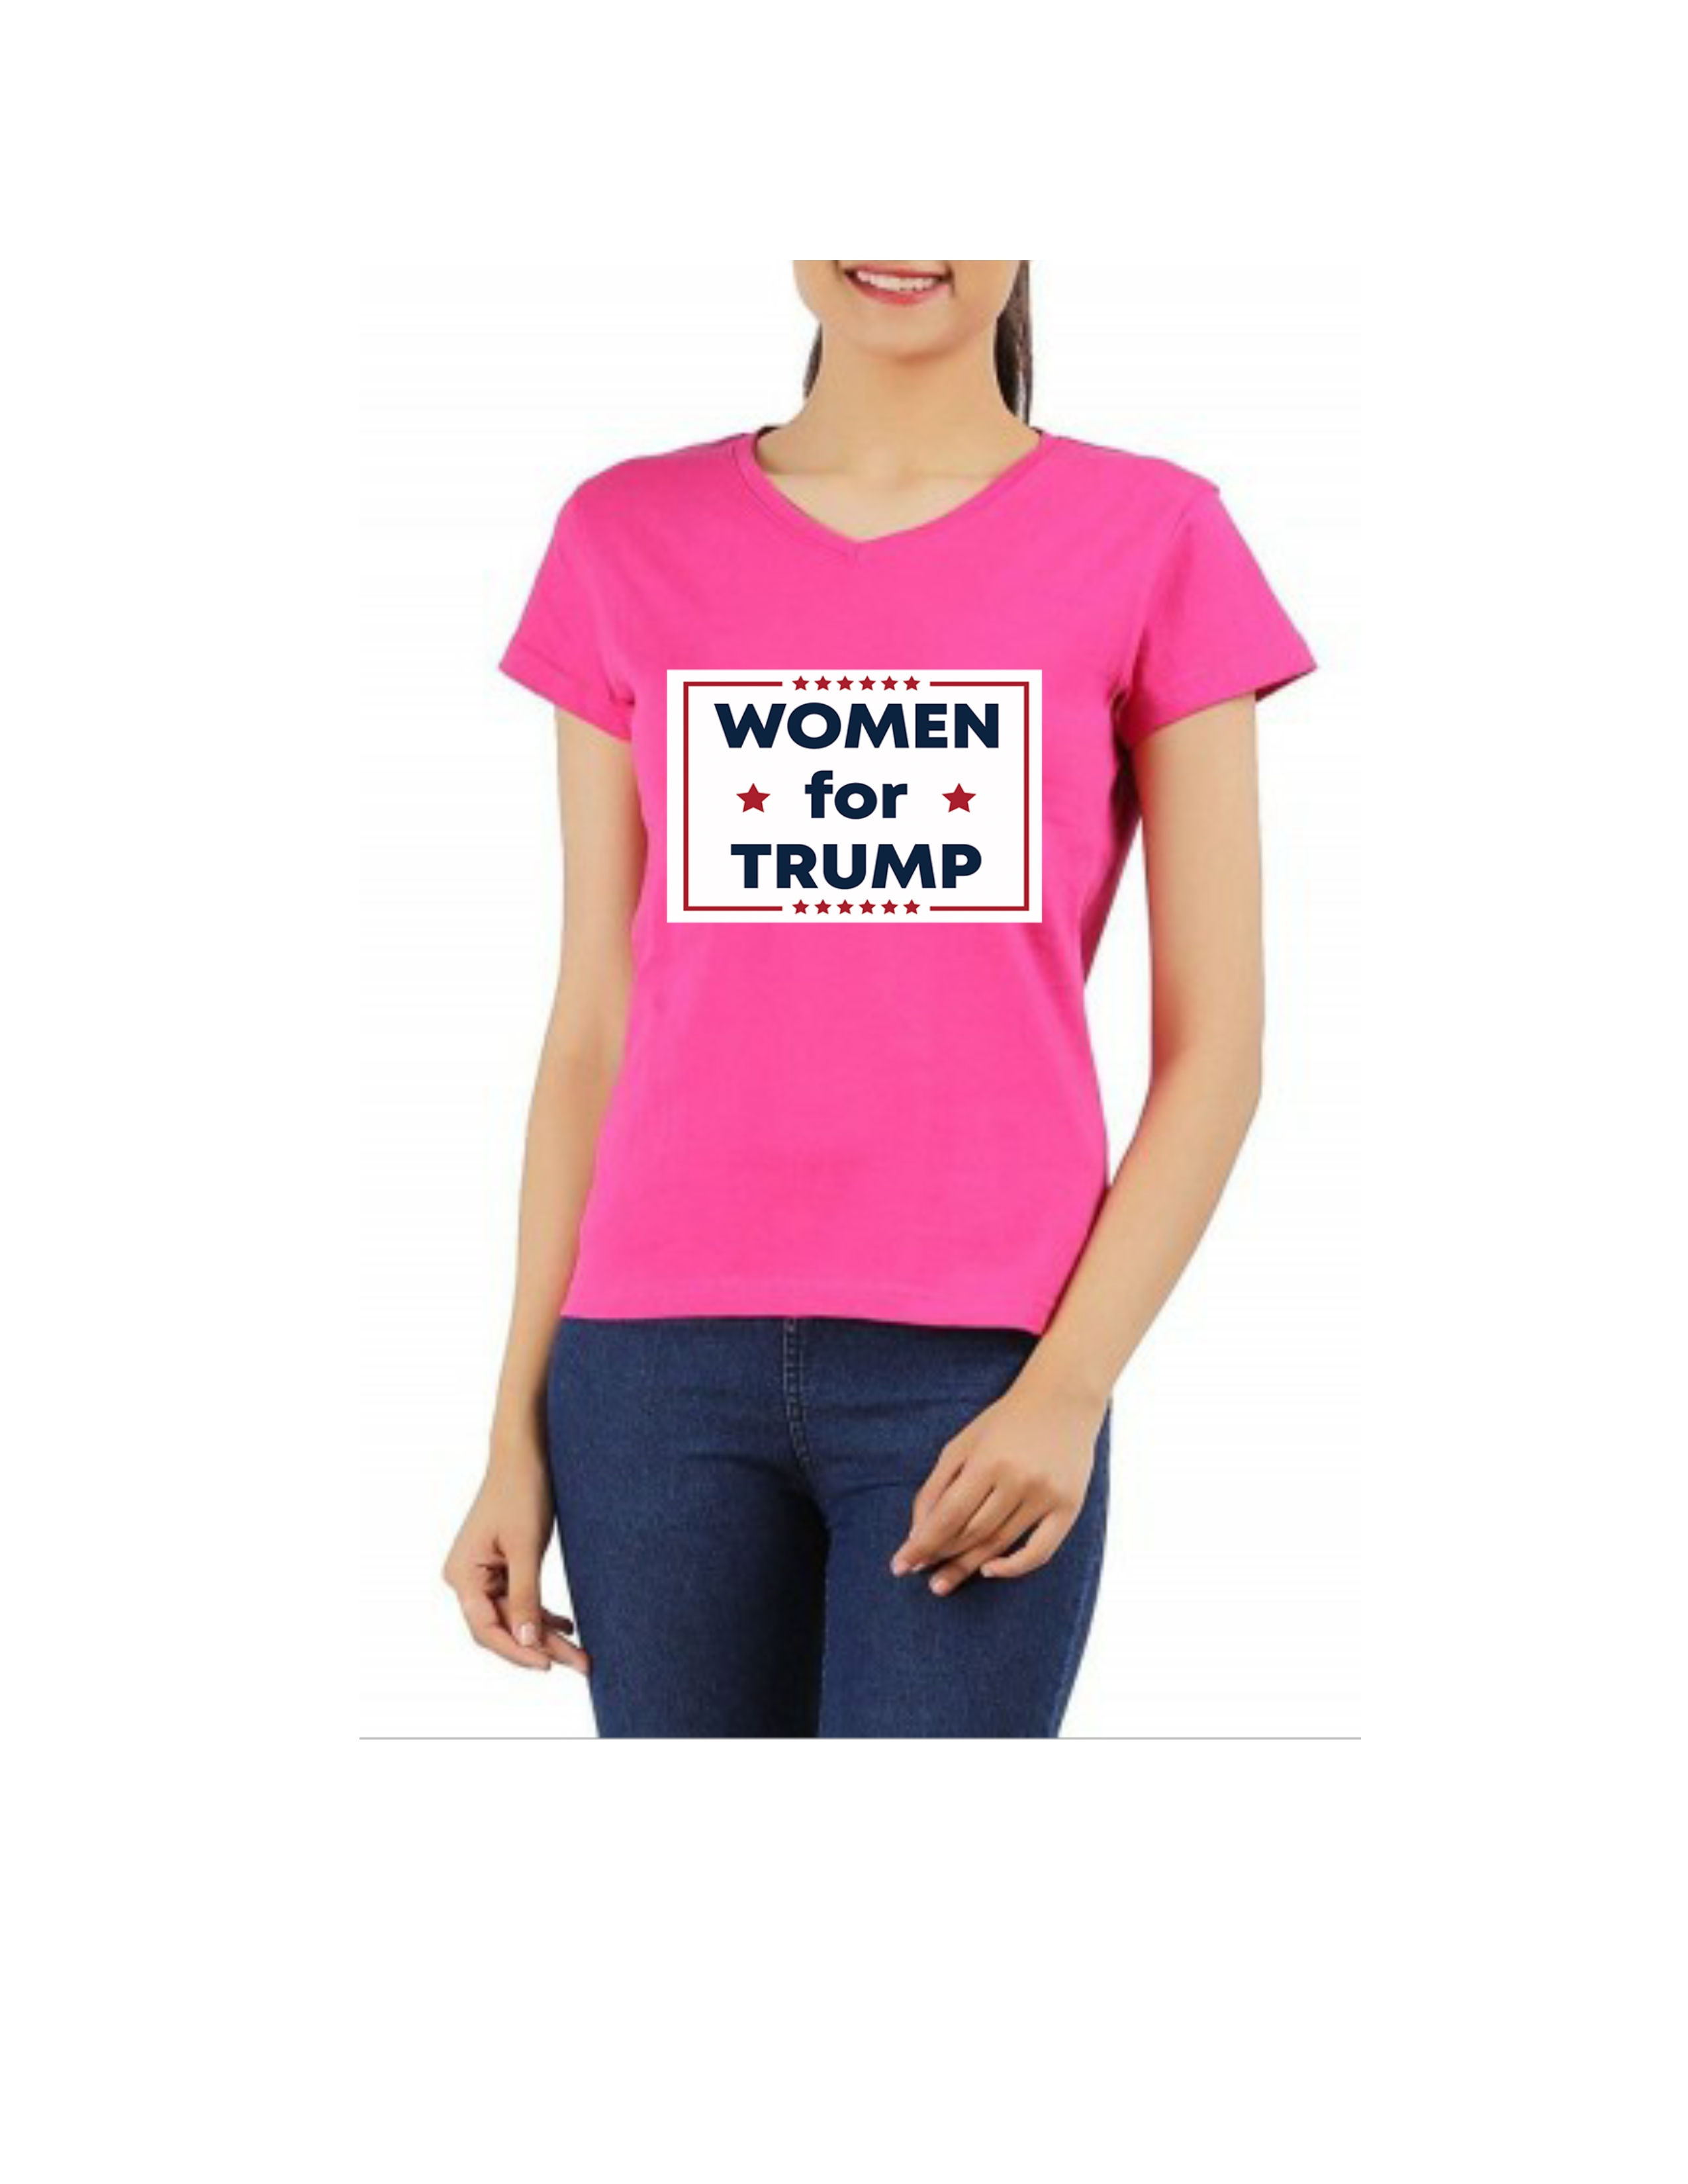 woman for trump t shirt